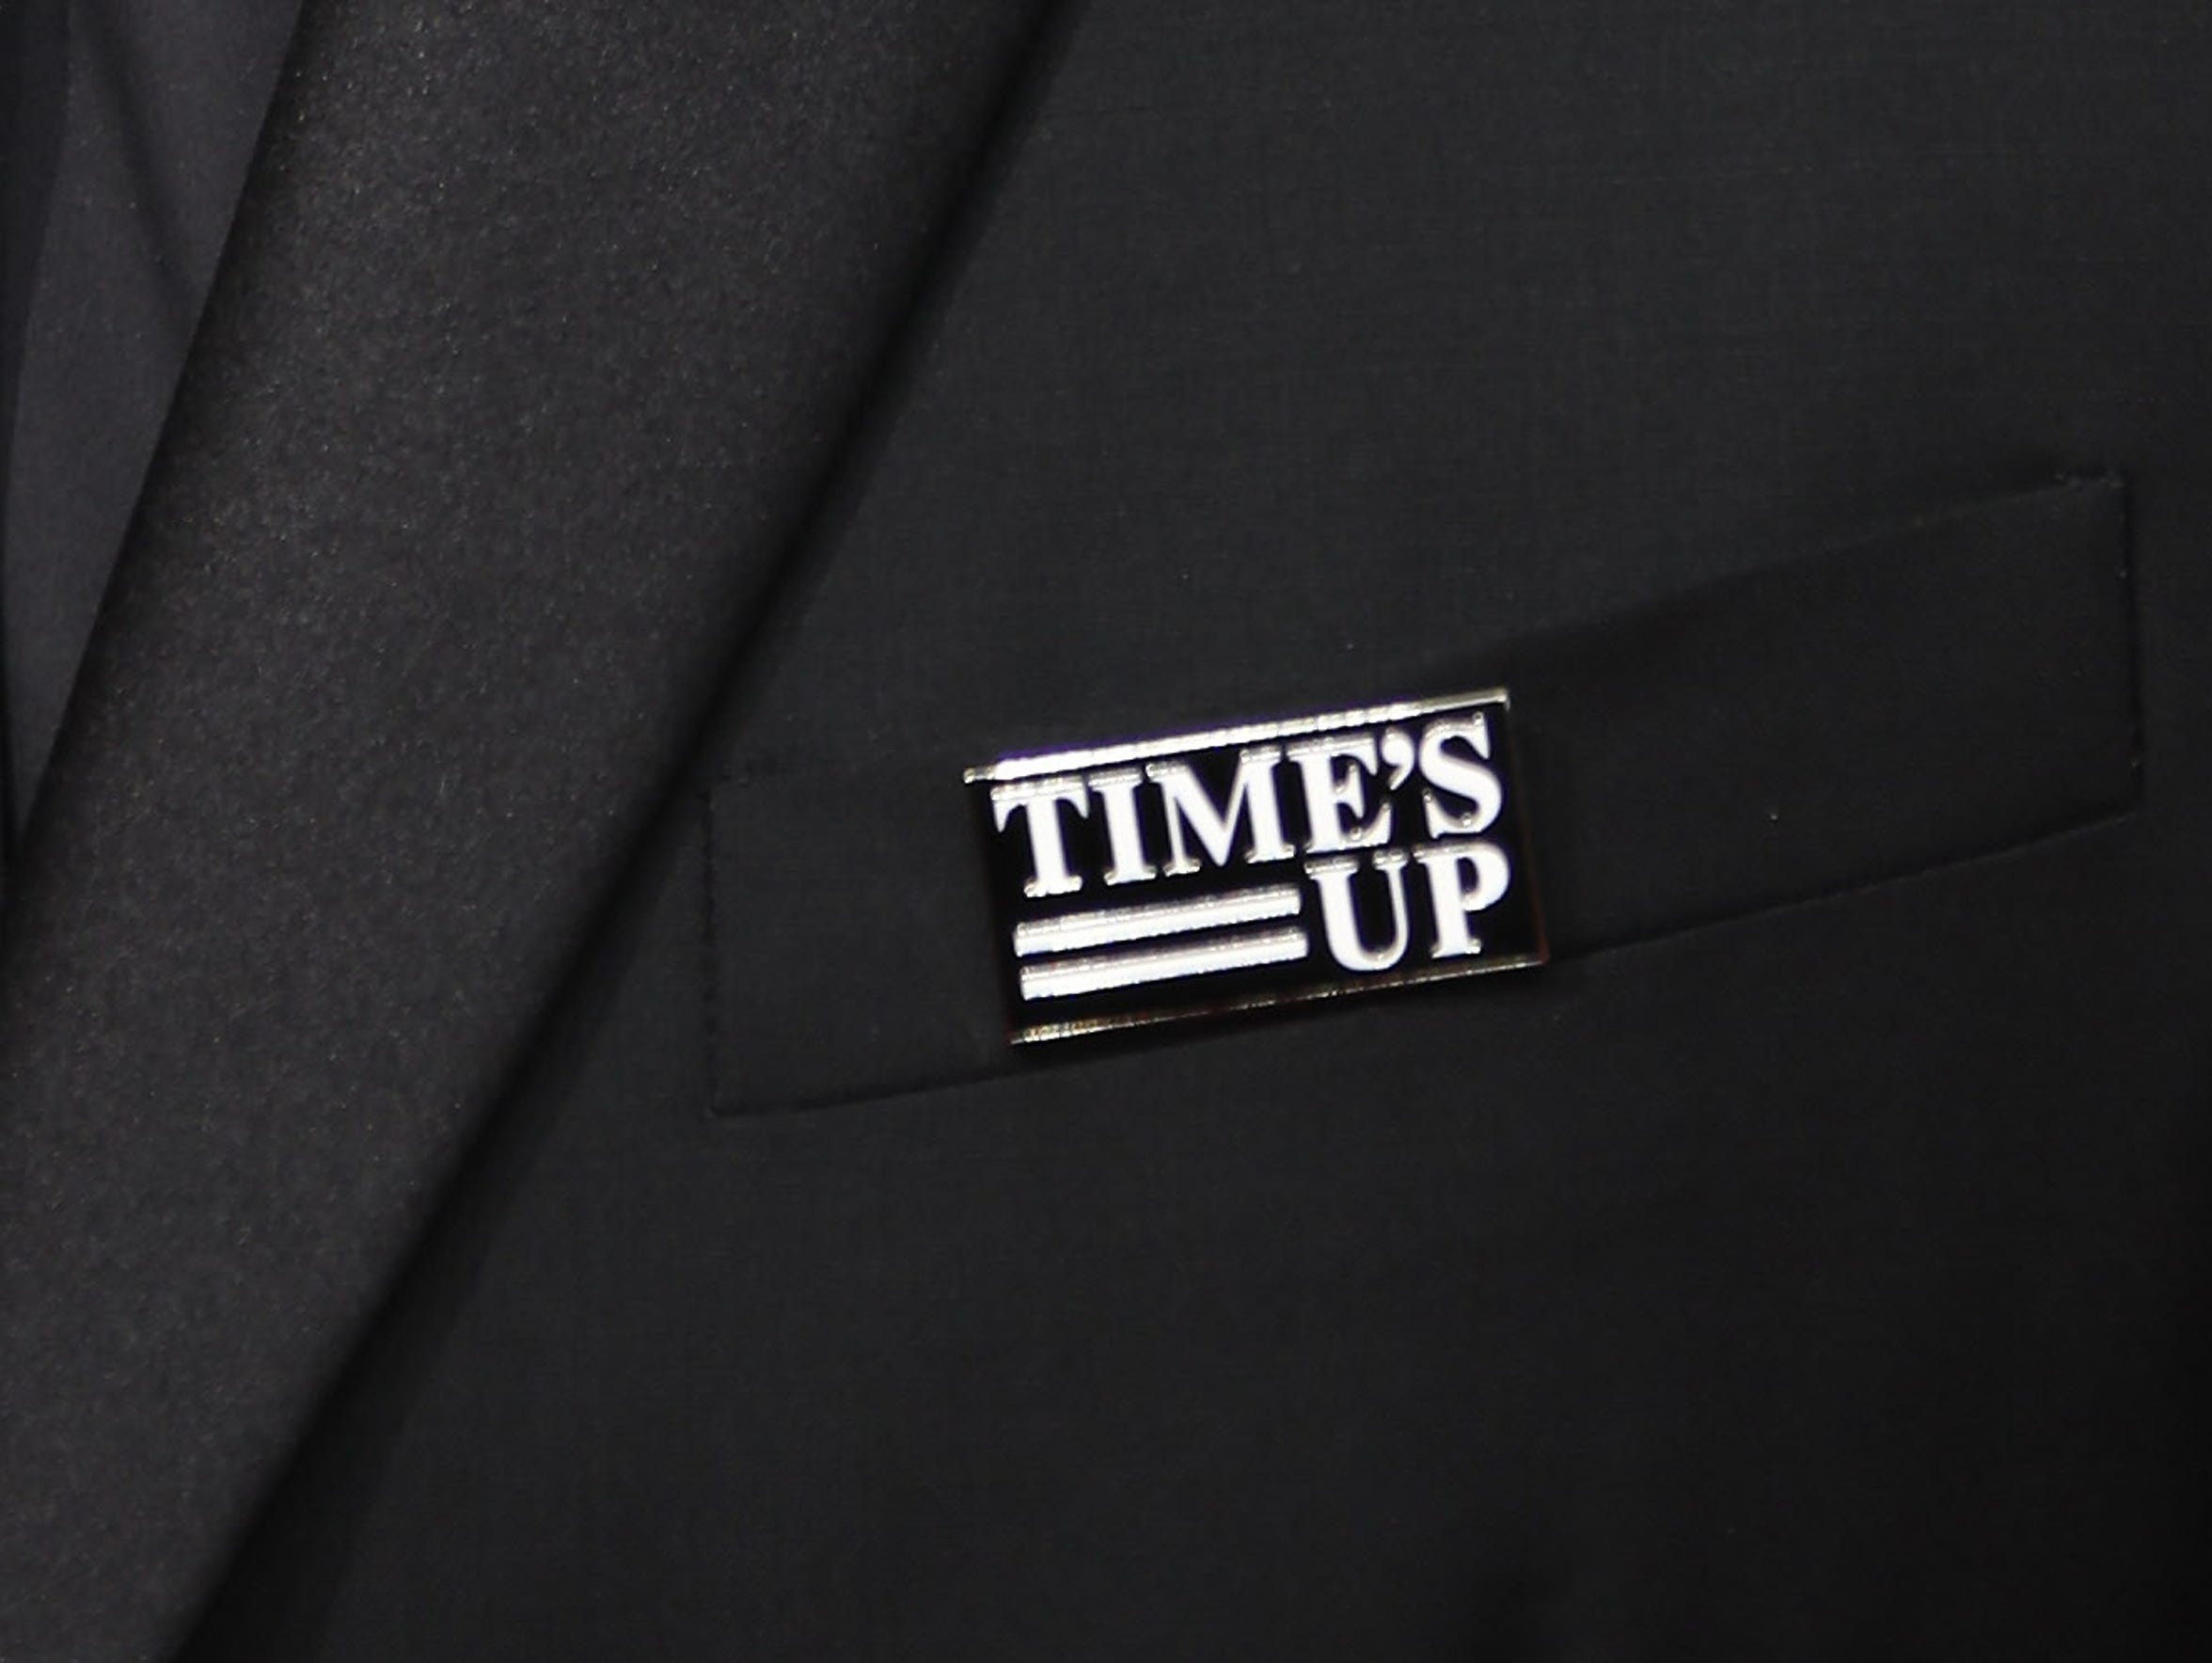 Many men wore Time's Up pins to the Golden Globe Awards and other red carpet events to show their support for the protests against sexual misconduct.